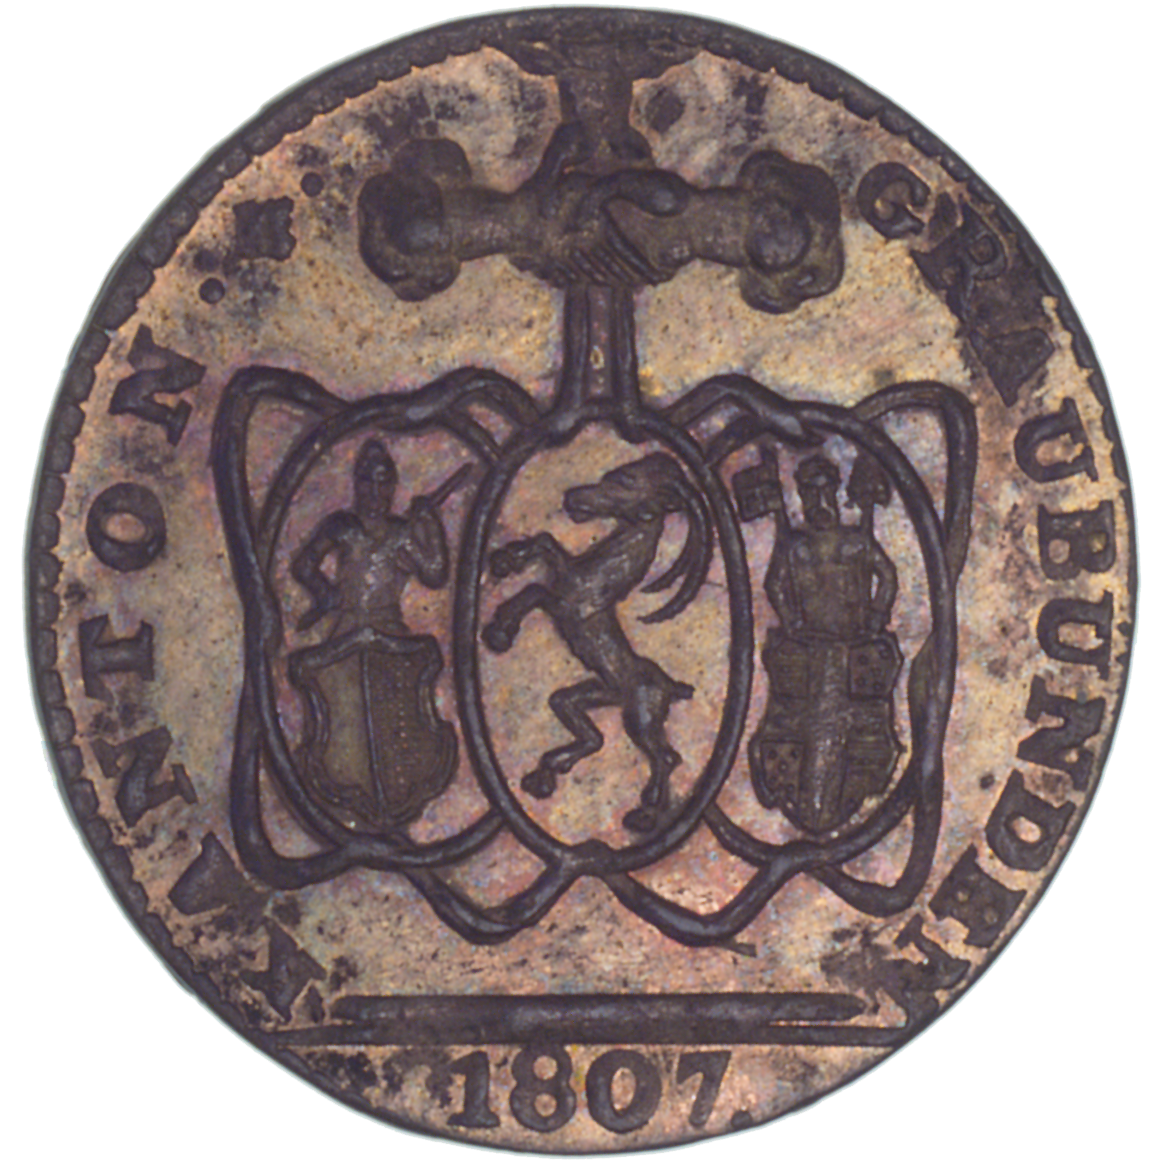 Canton of Grisons, Time of Mediation, Batzen 1807 (obverse)